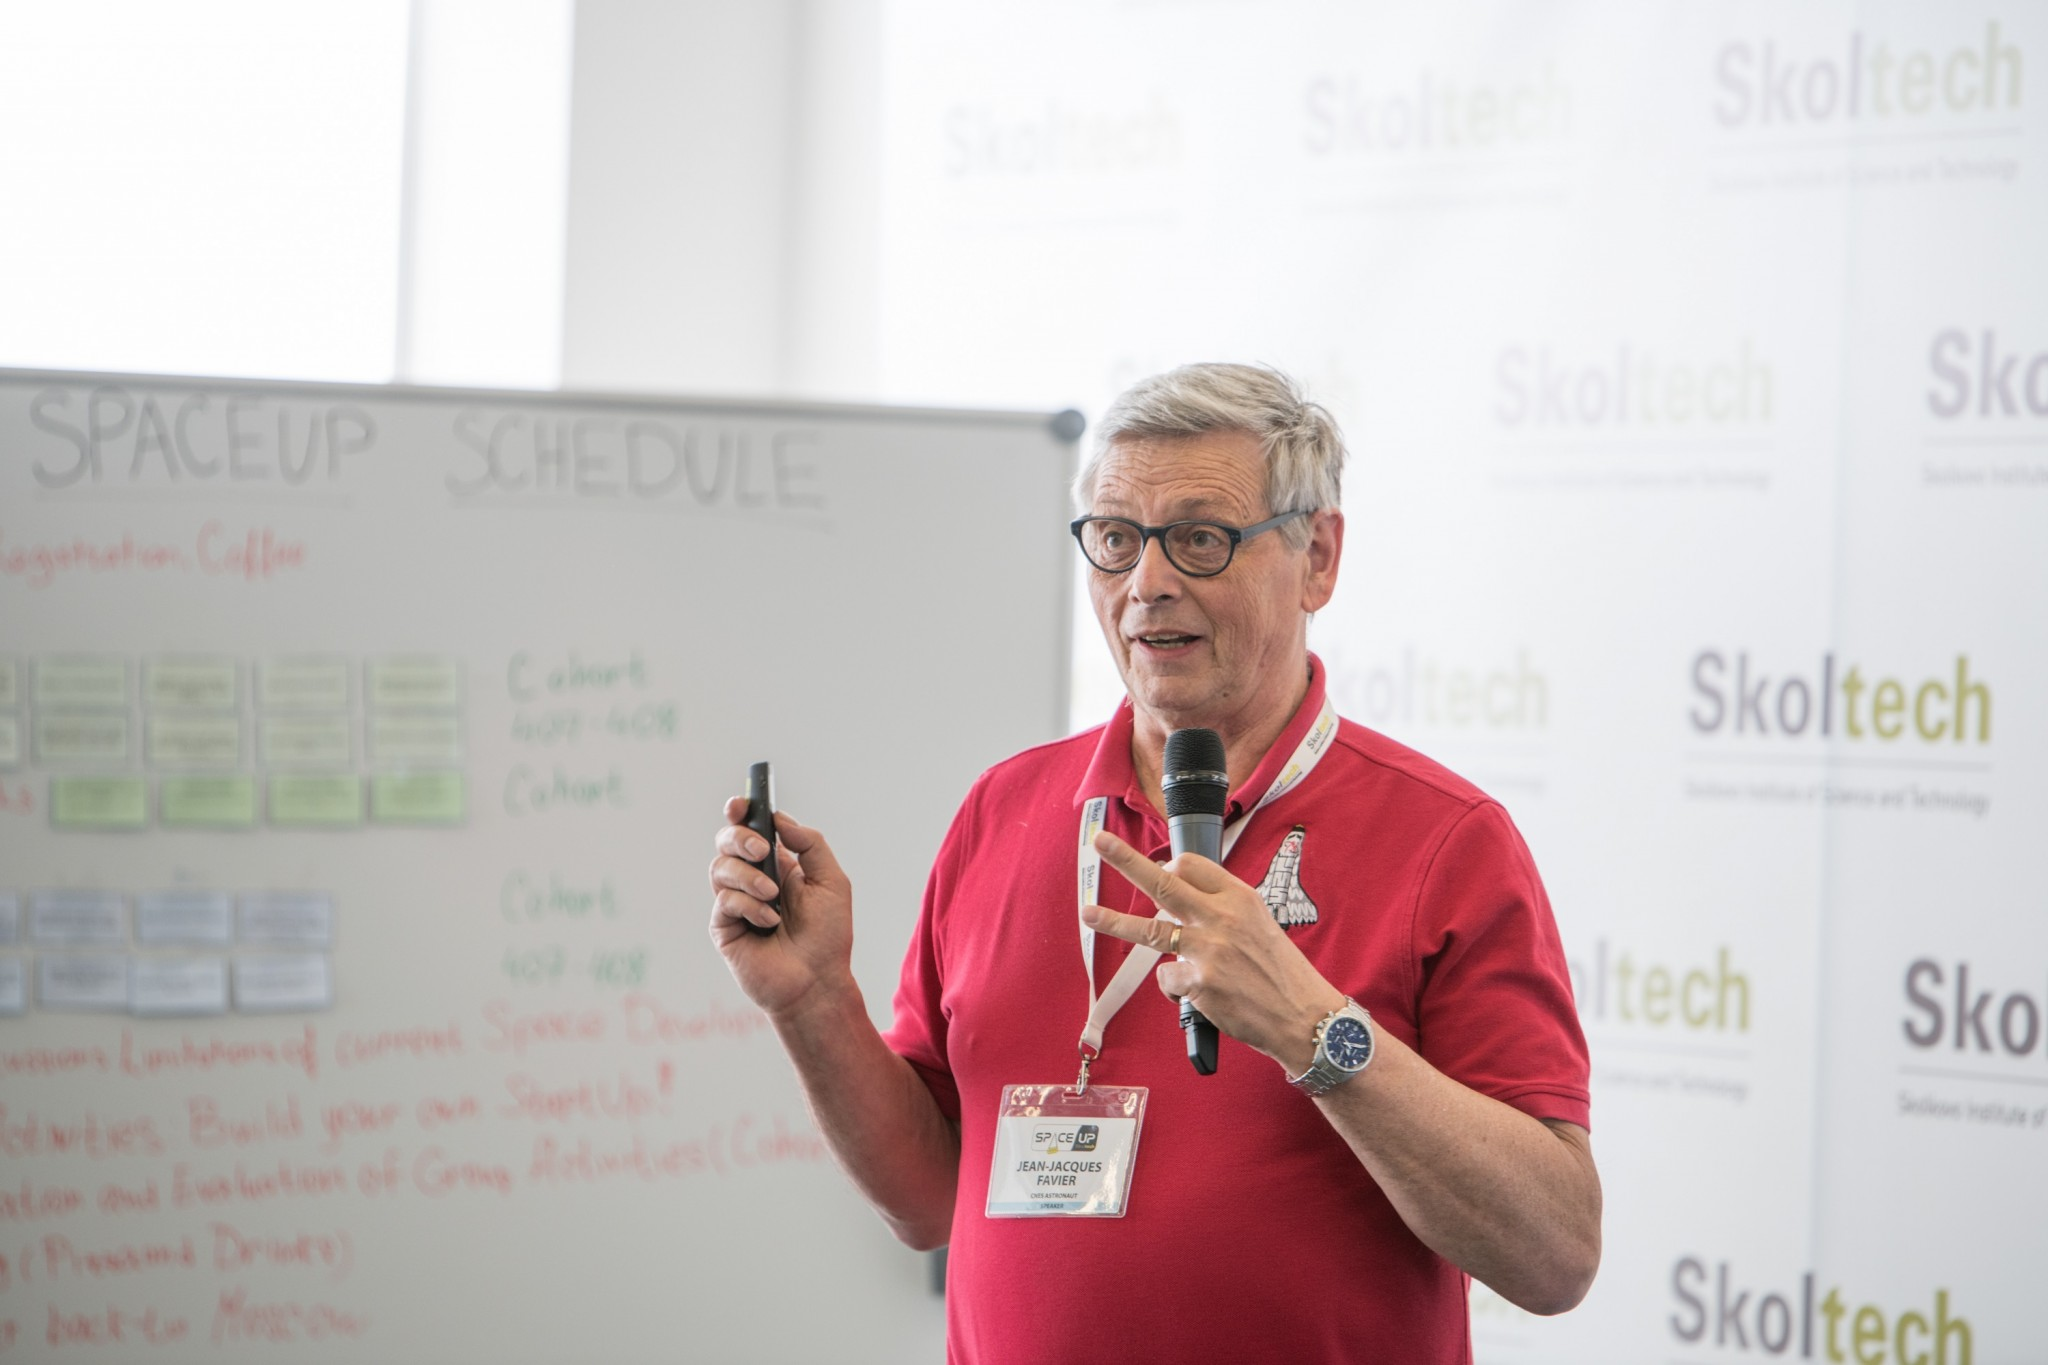 Favier delivering a lecture at the recent Skoltech SpaceUp unconference. Photo: Skoltech.